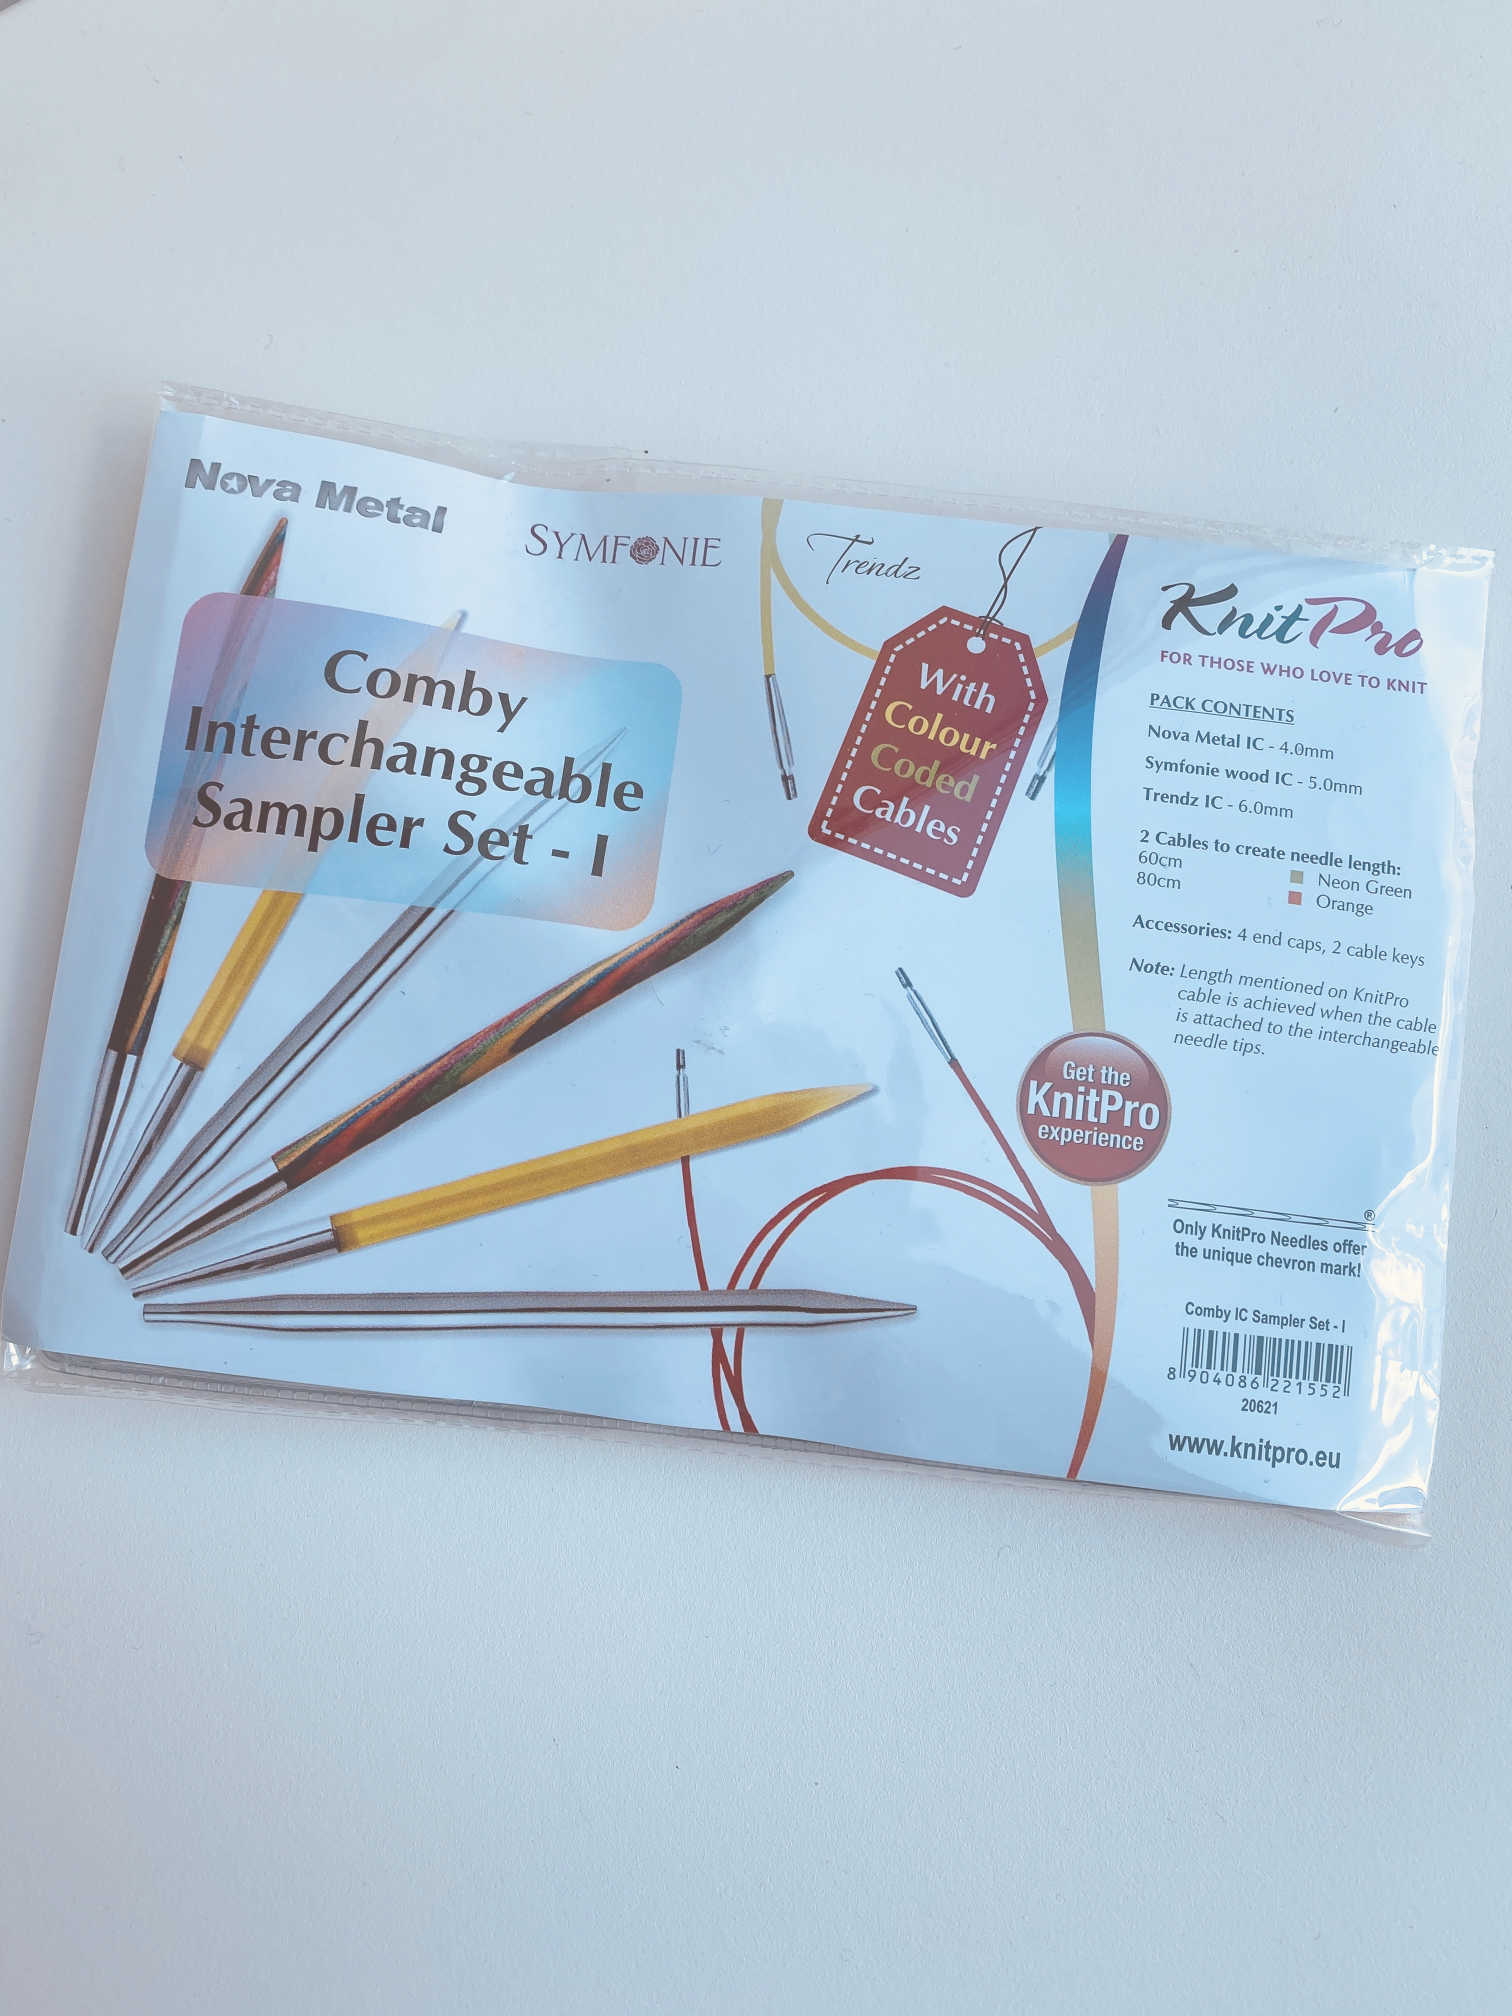 Knit Pro Comby Interchangeable Sampler Set - I